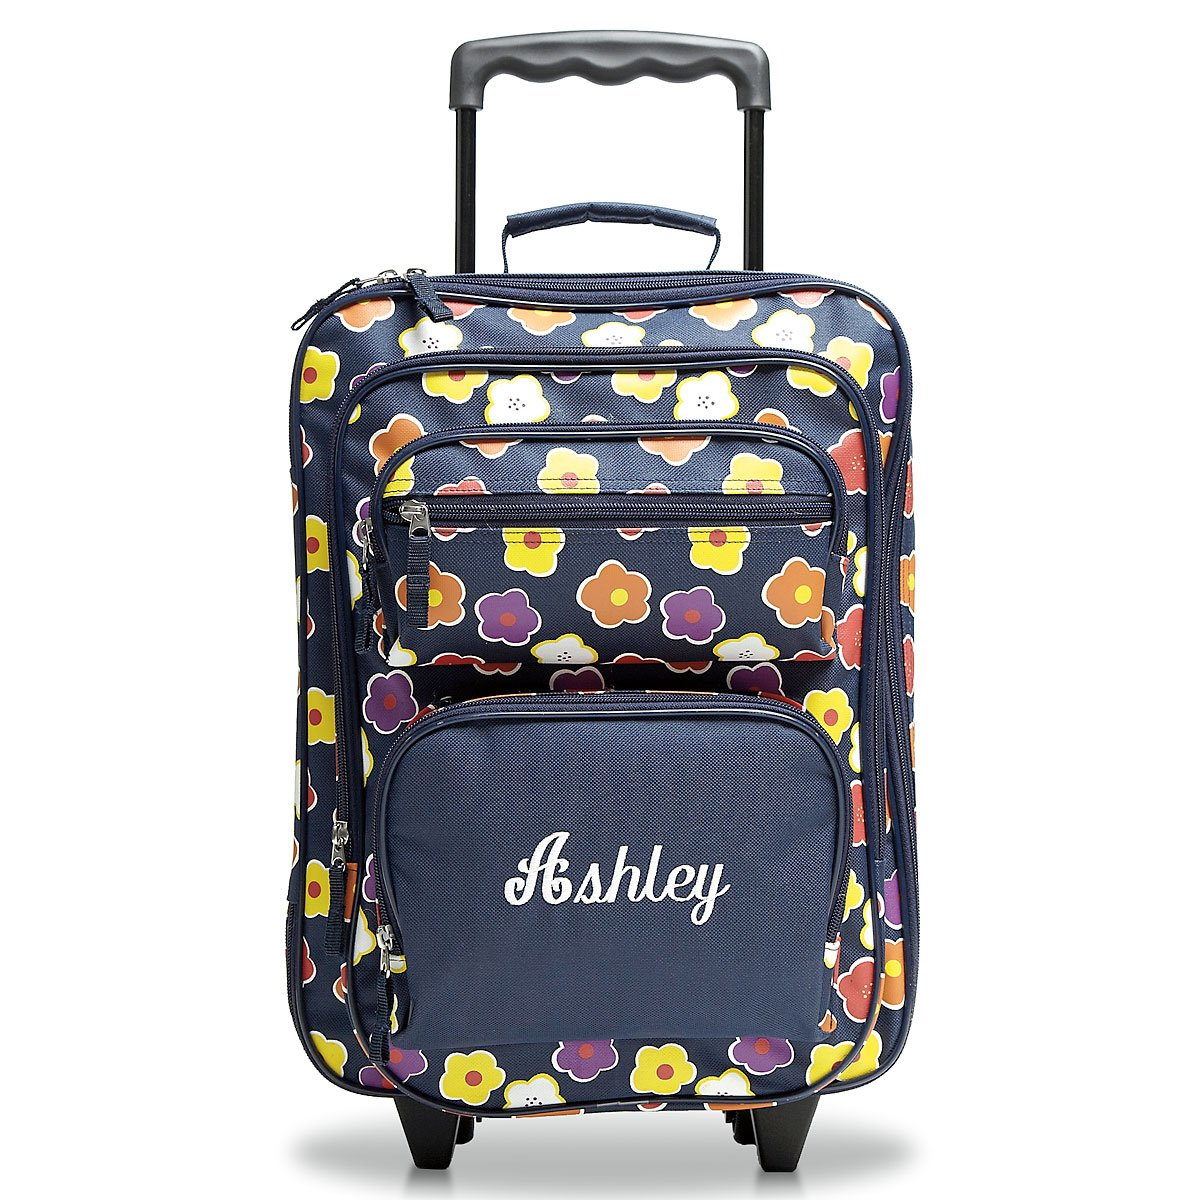 Personalized Rolling Luggage for Kids - Navy Floral Design, 5'' x 12'' x 20''H, By Lillian Vernon